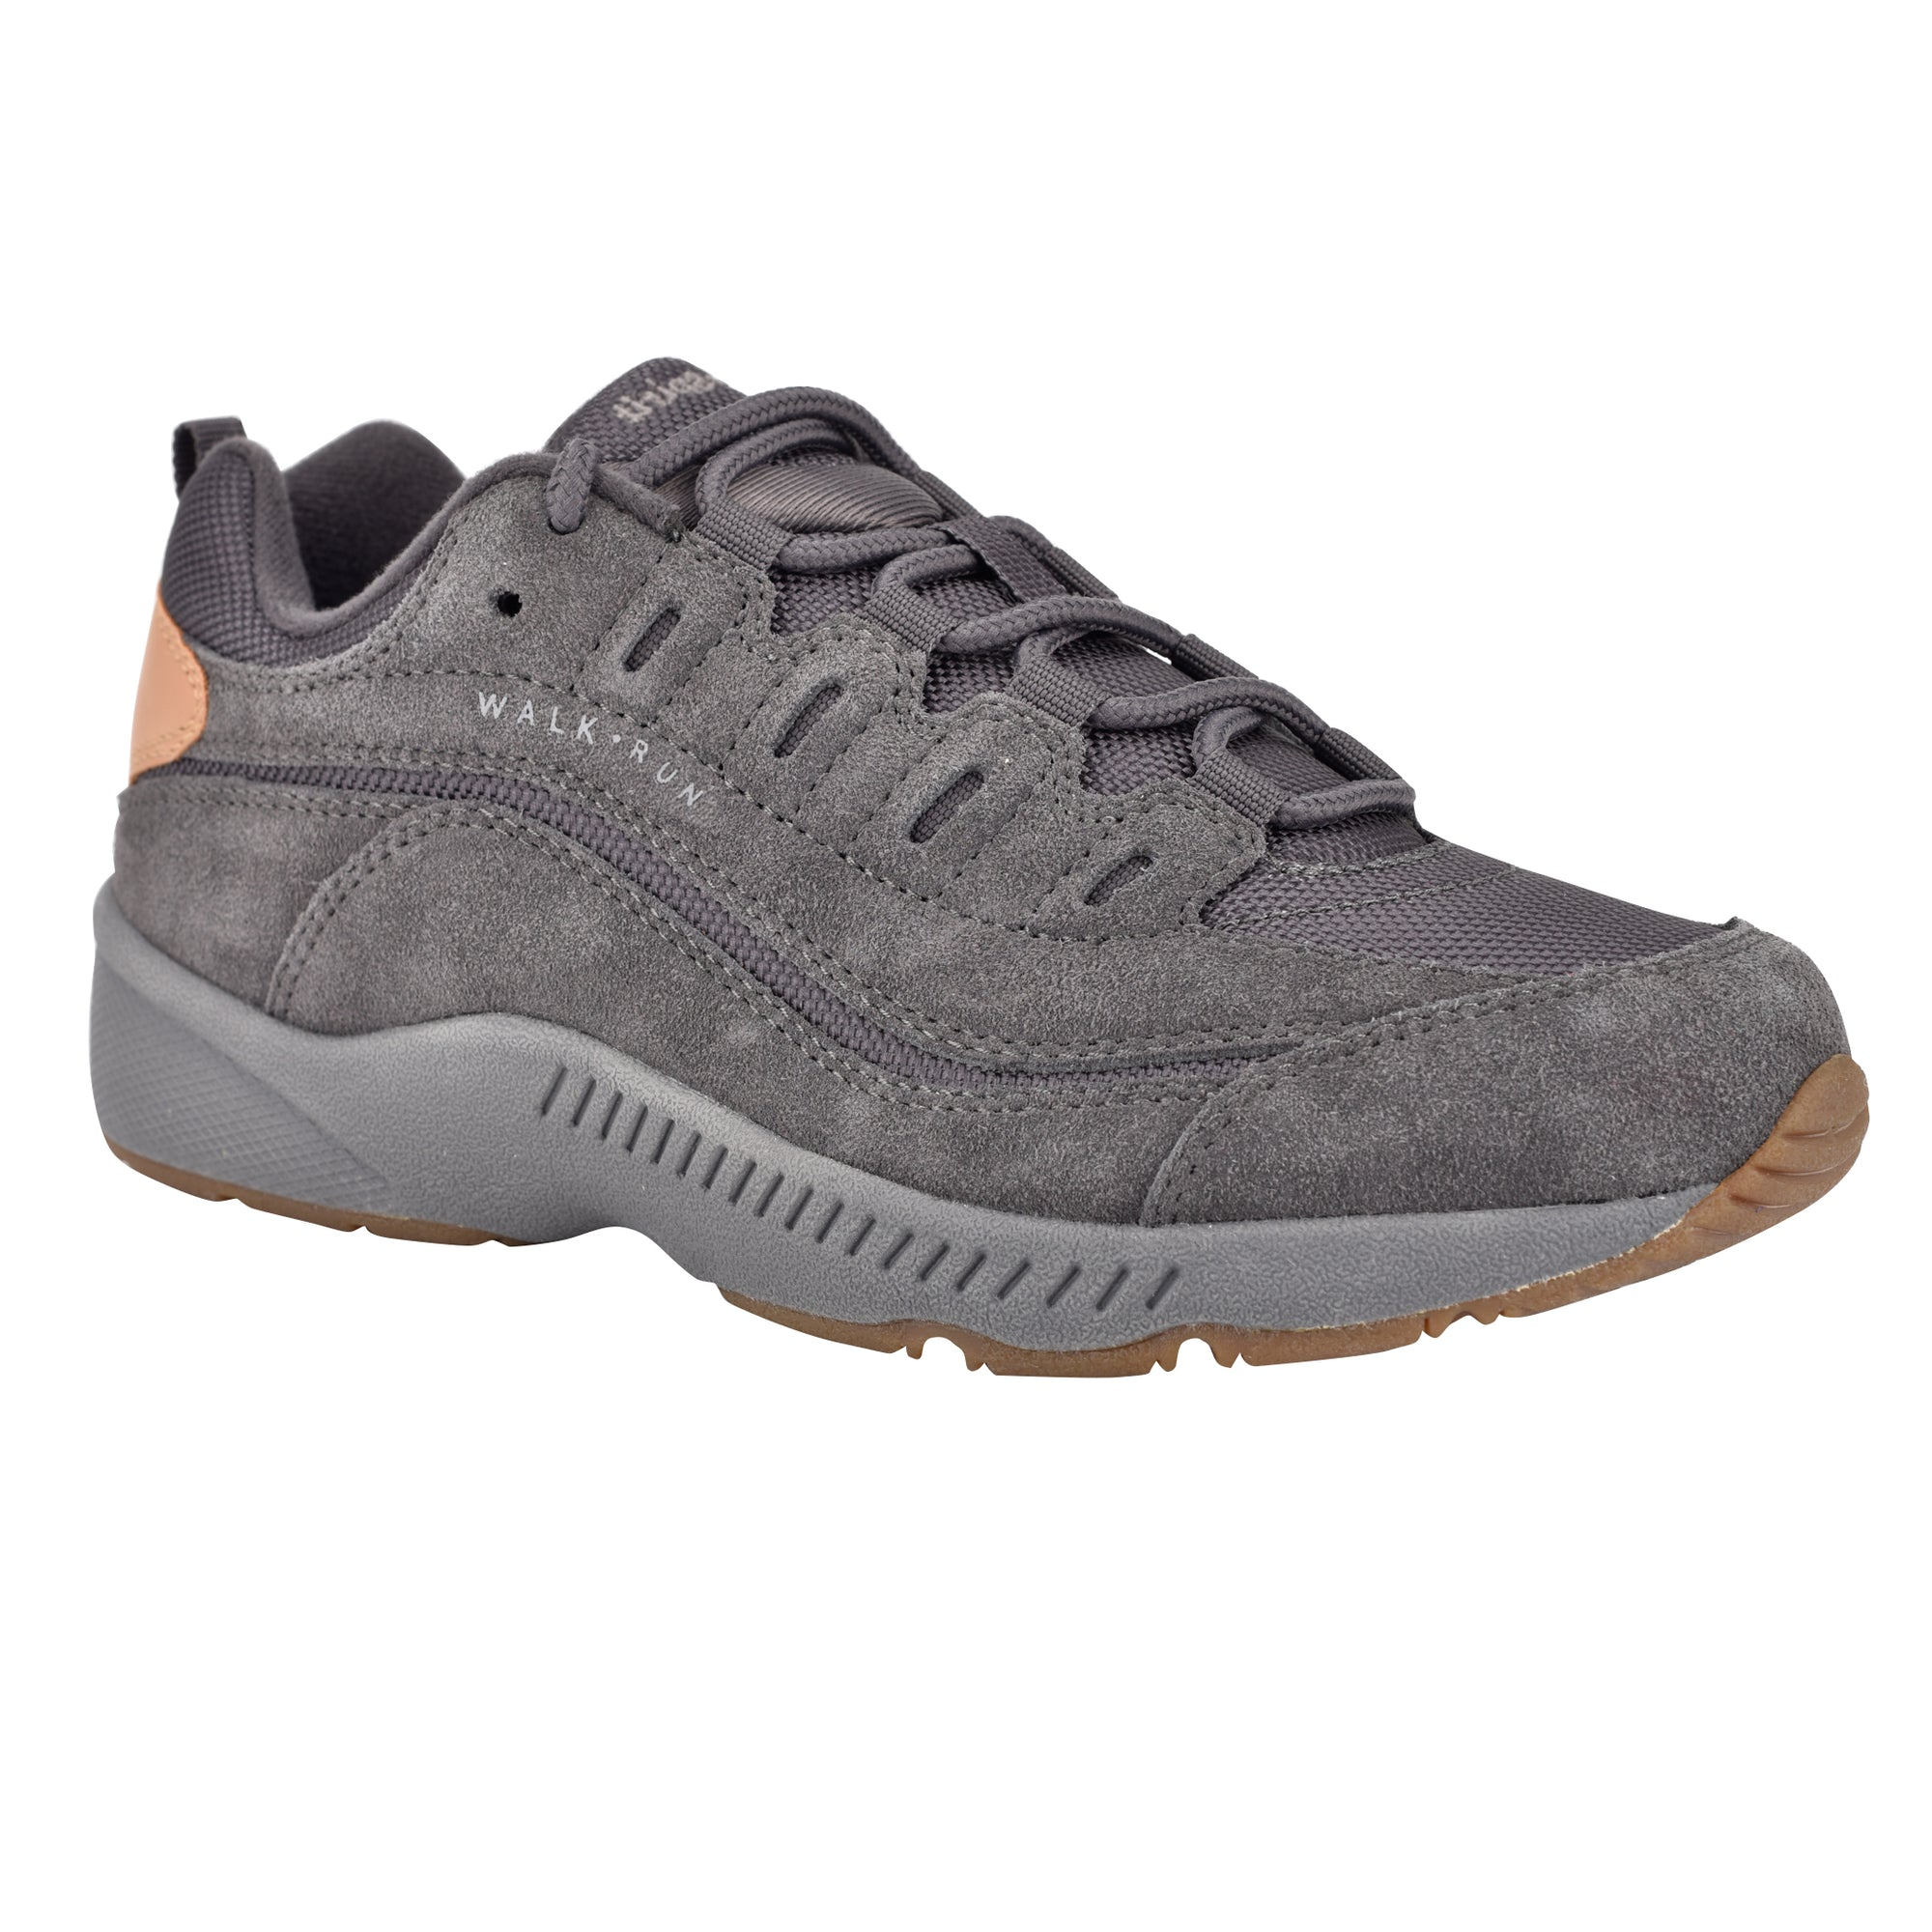 Romy Water Resistant Suede Walking Shoes